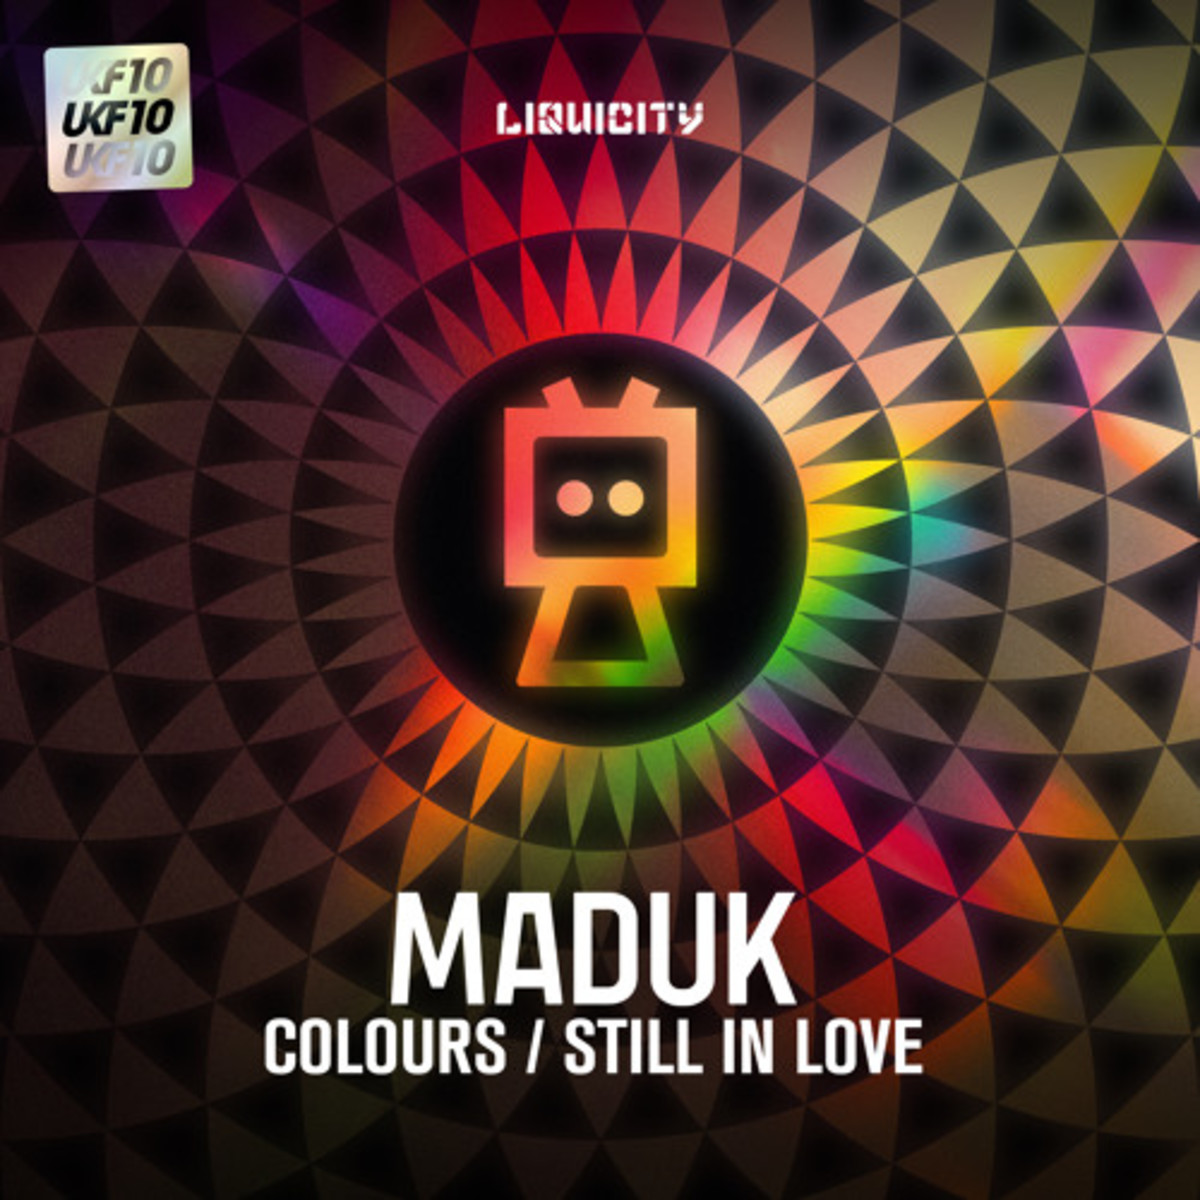 Maduk - Colours / Still In Love (Liquicity / UKF 10 Year Anniversary Release)